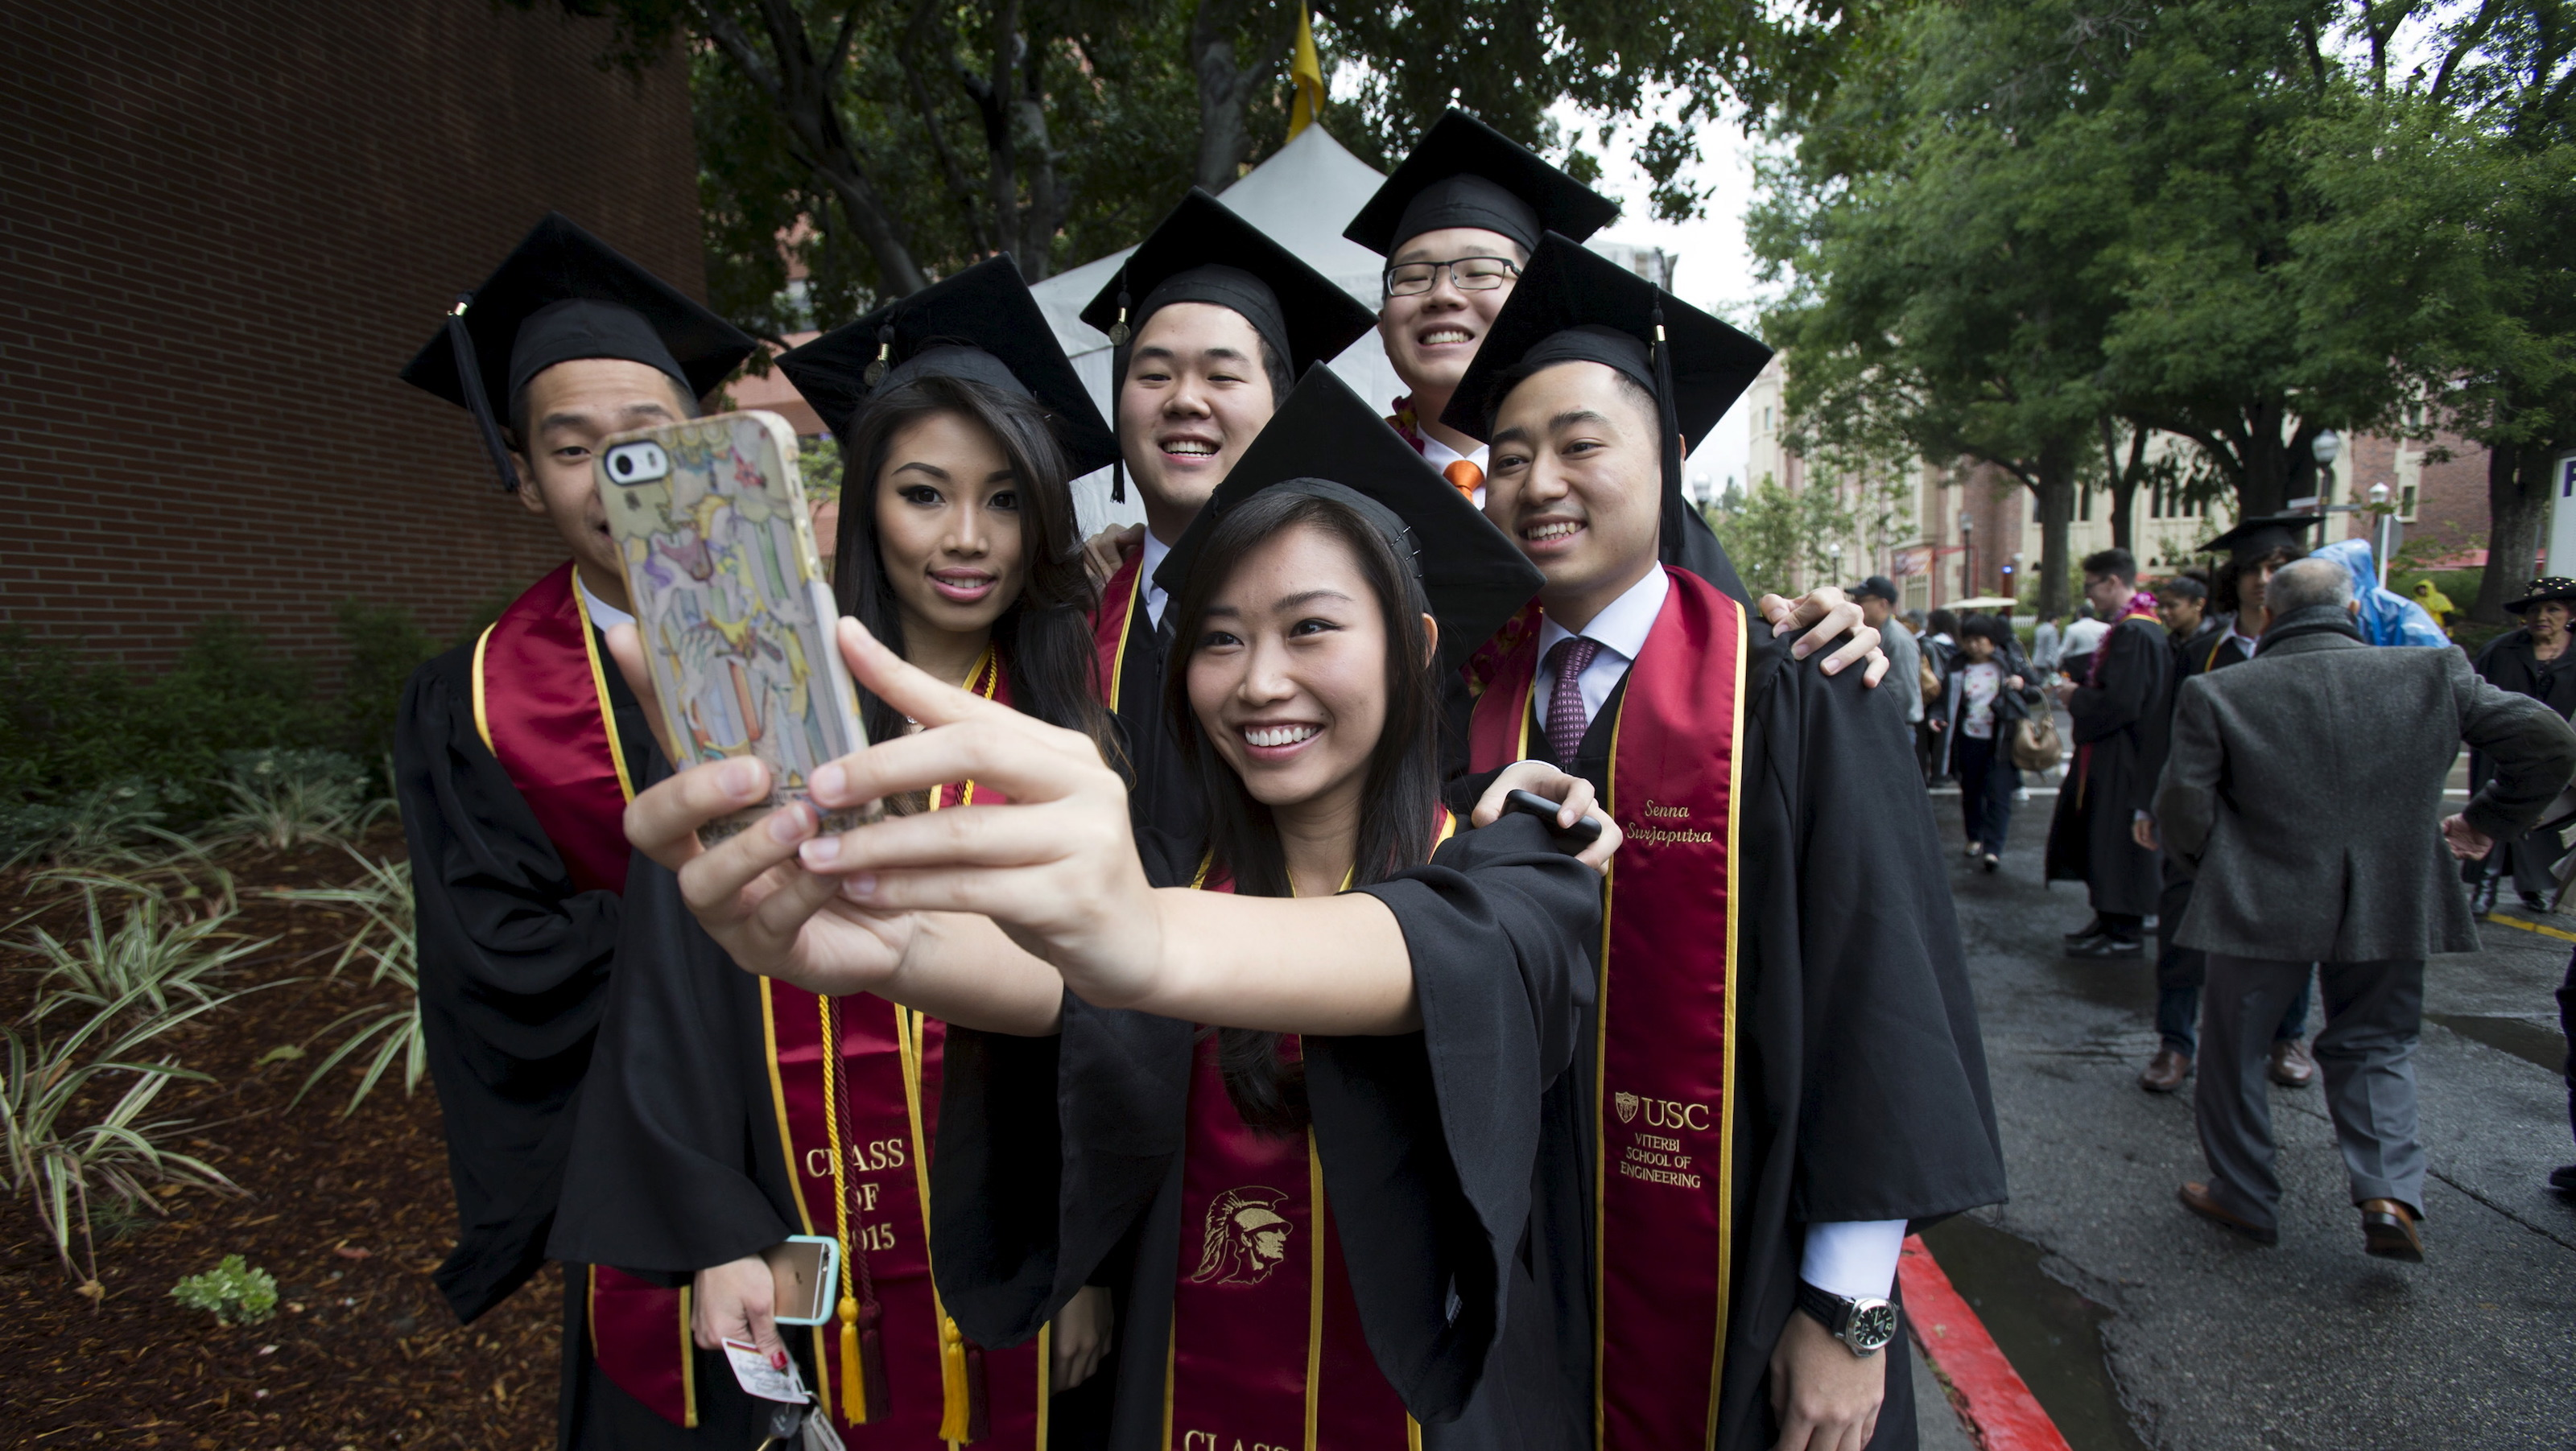 Graduating students take a selfie following USC's Commencement Ceremony at University of Southern California in Los Angeles, California May 15, 2015. REUTERS/Mario Anzuoni - RTX1D62Z